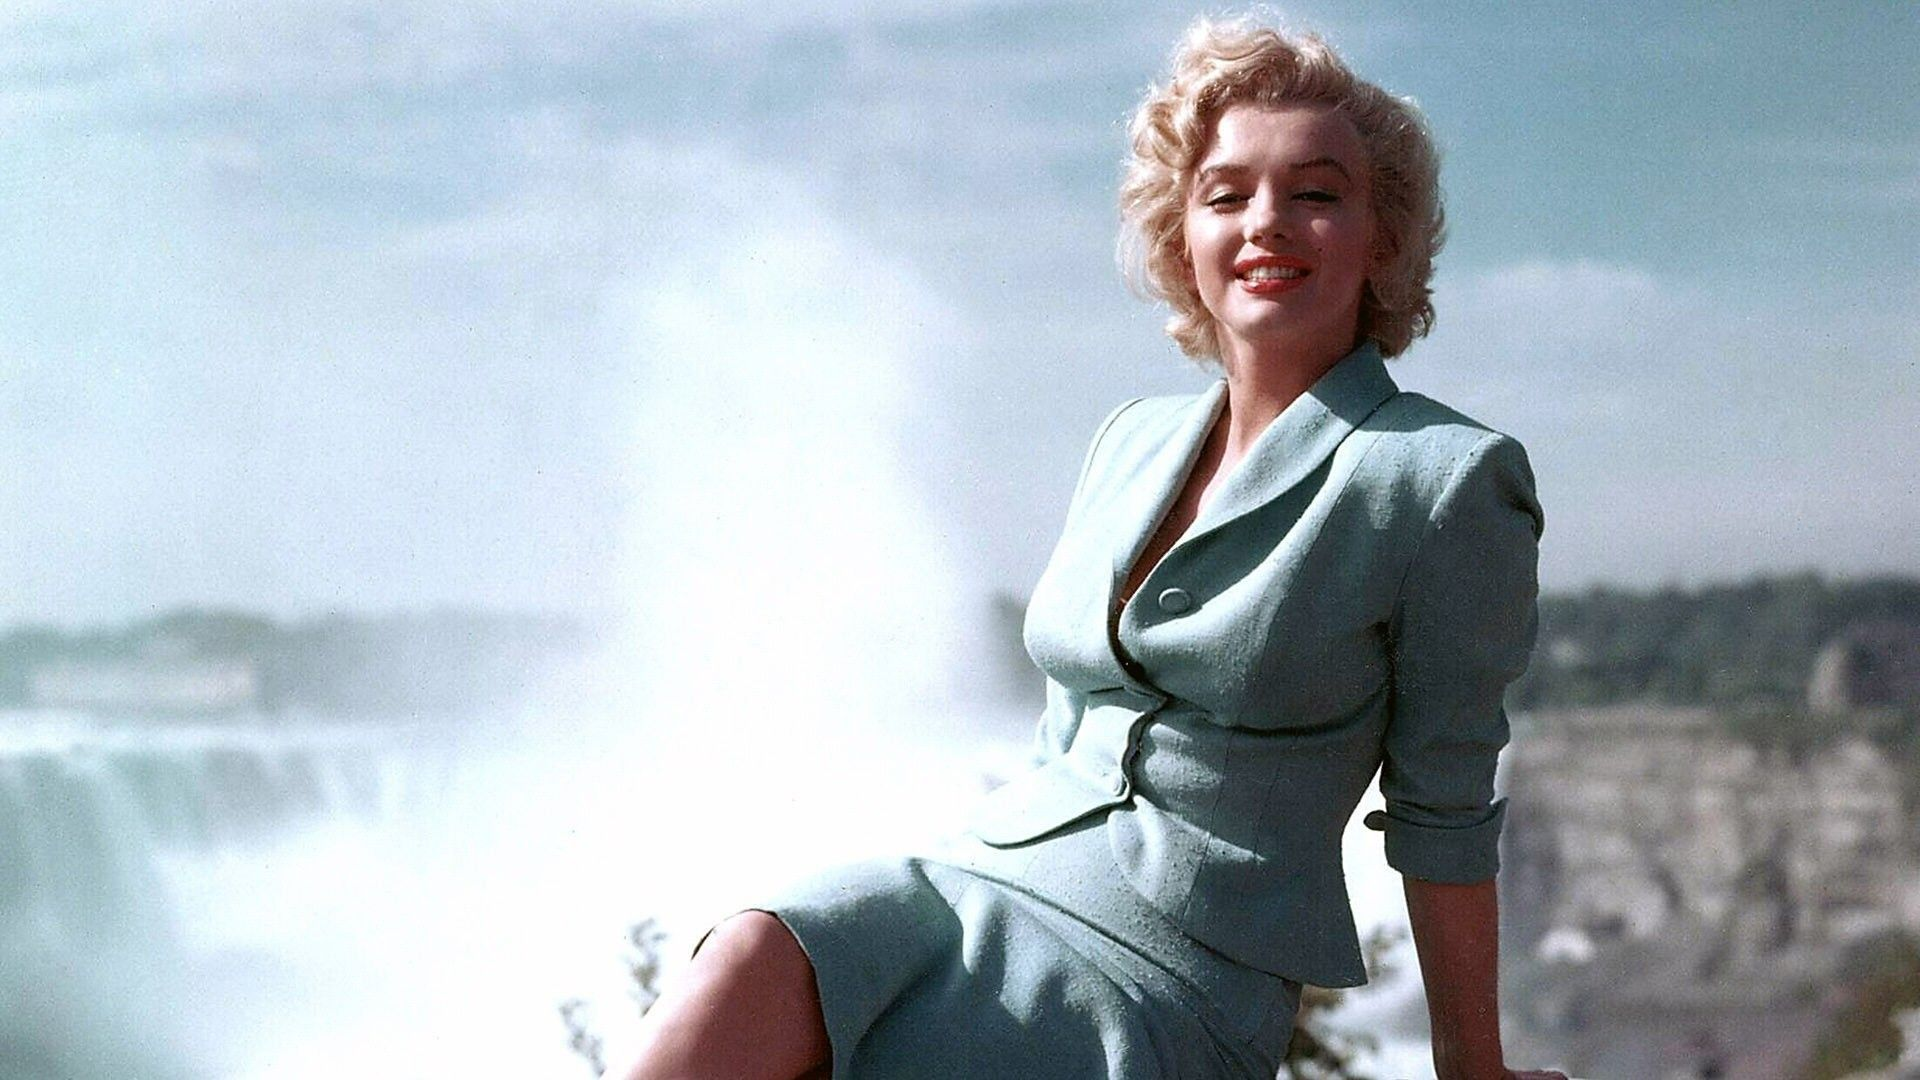 Full View and Download Marilyn Monroe HD Wallpaper with resolution of 1417